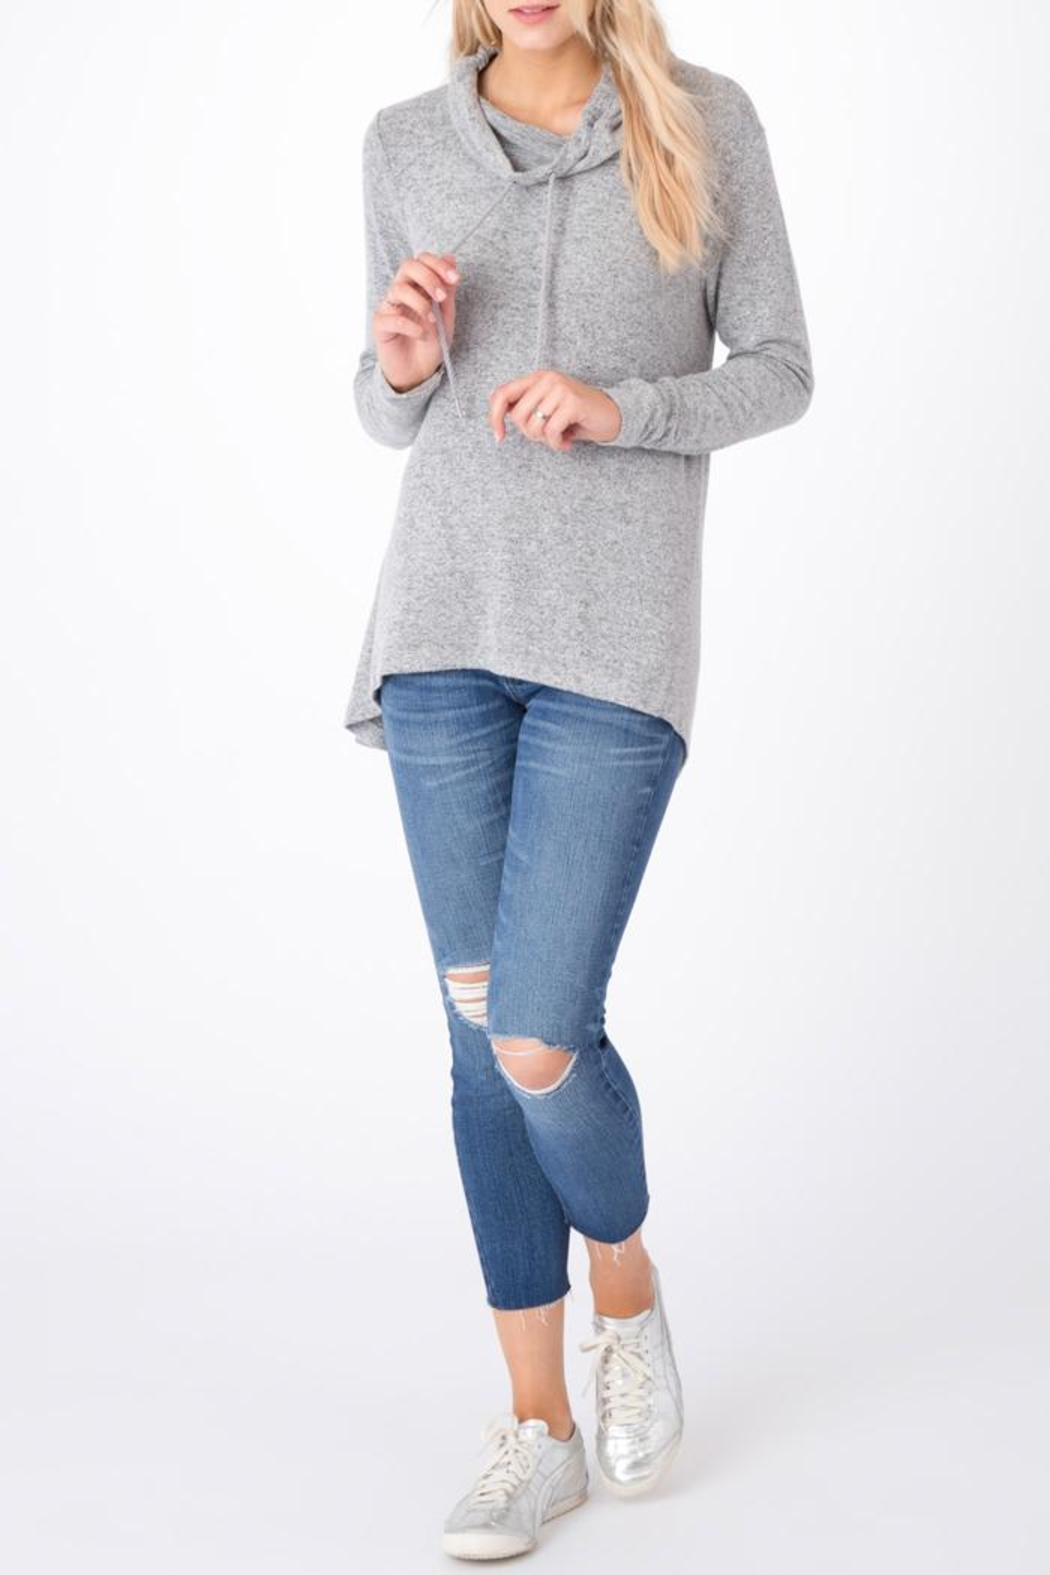 z supply Marled Cowl-Neck Sweater - Back Cropped Image